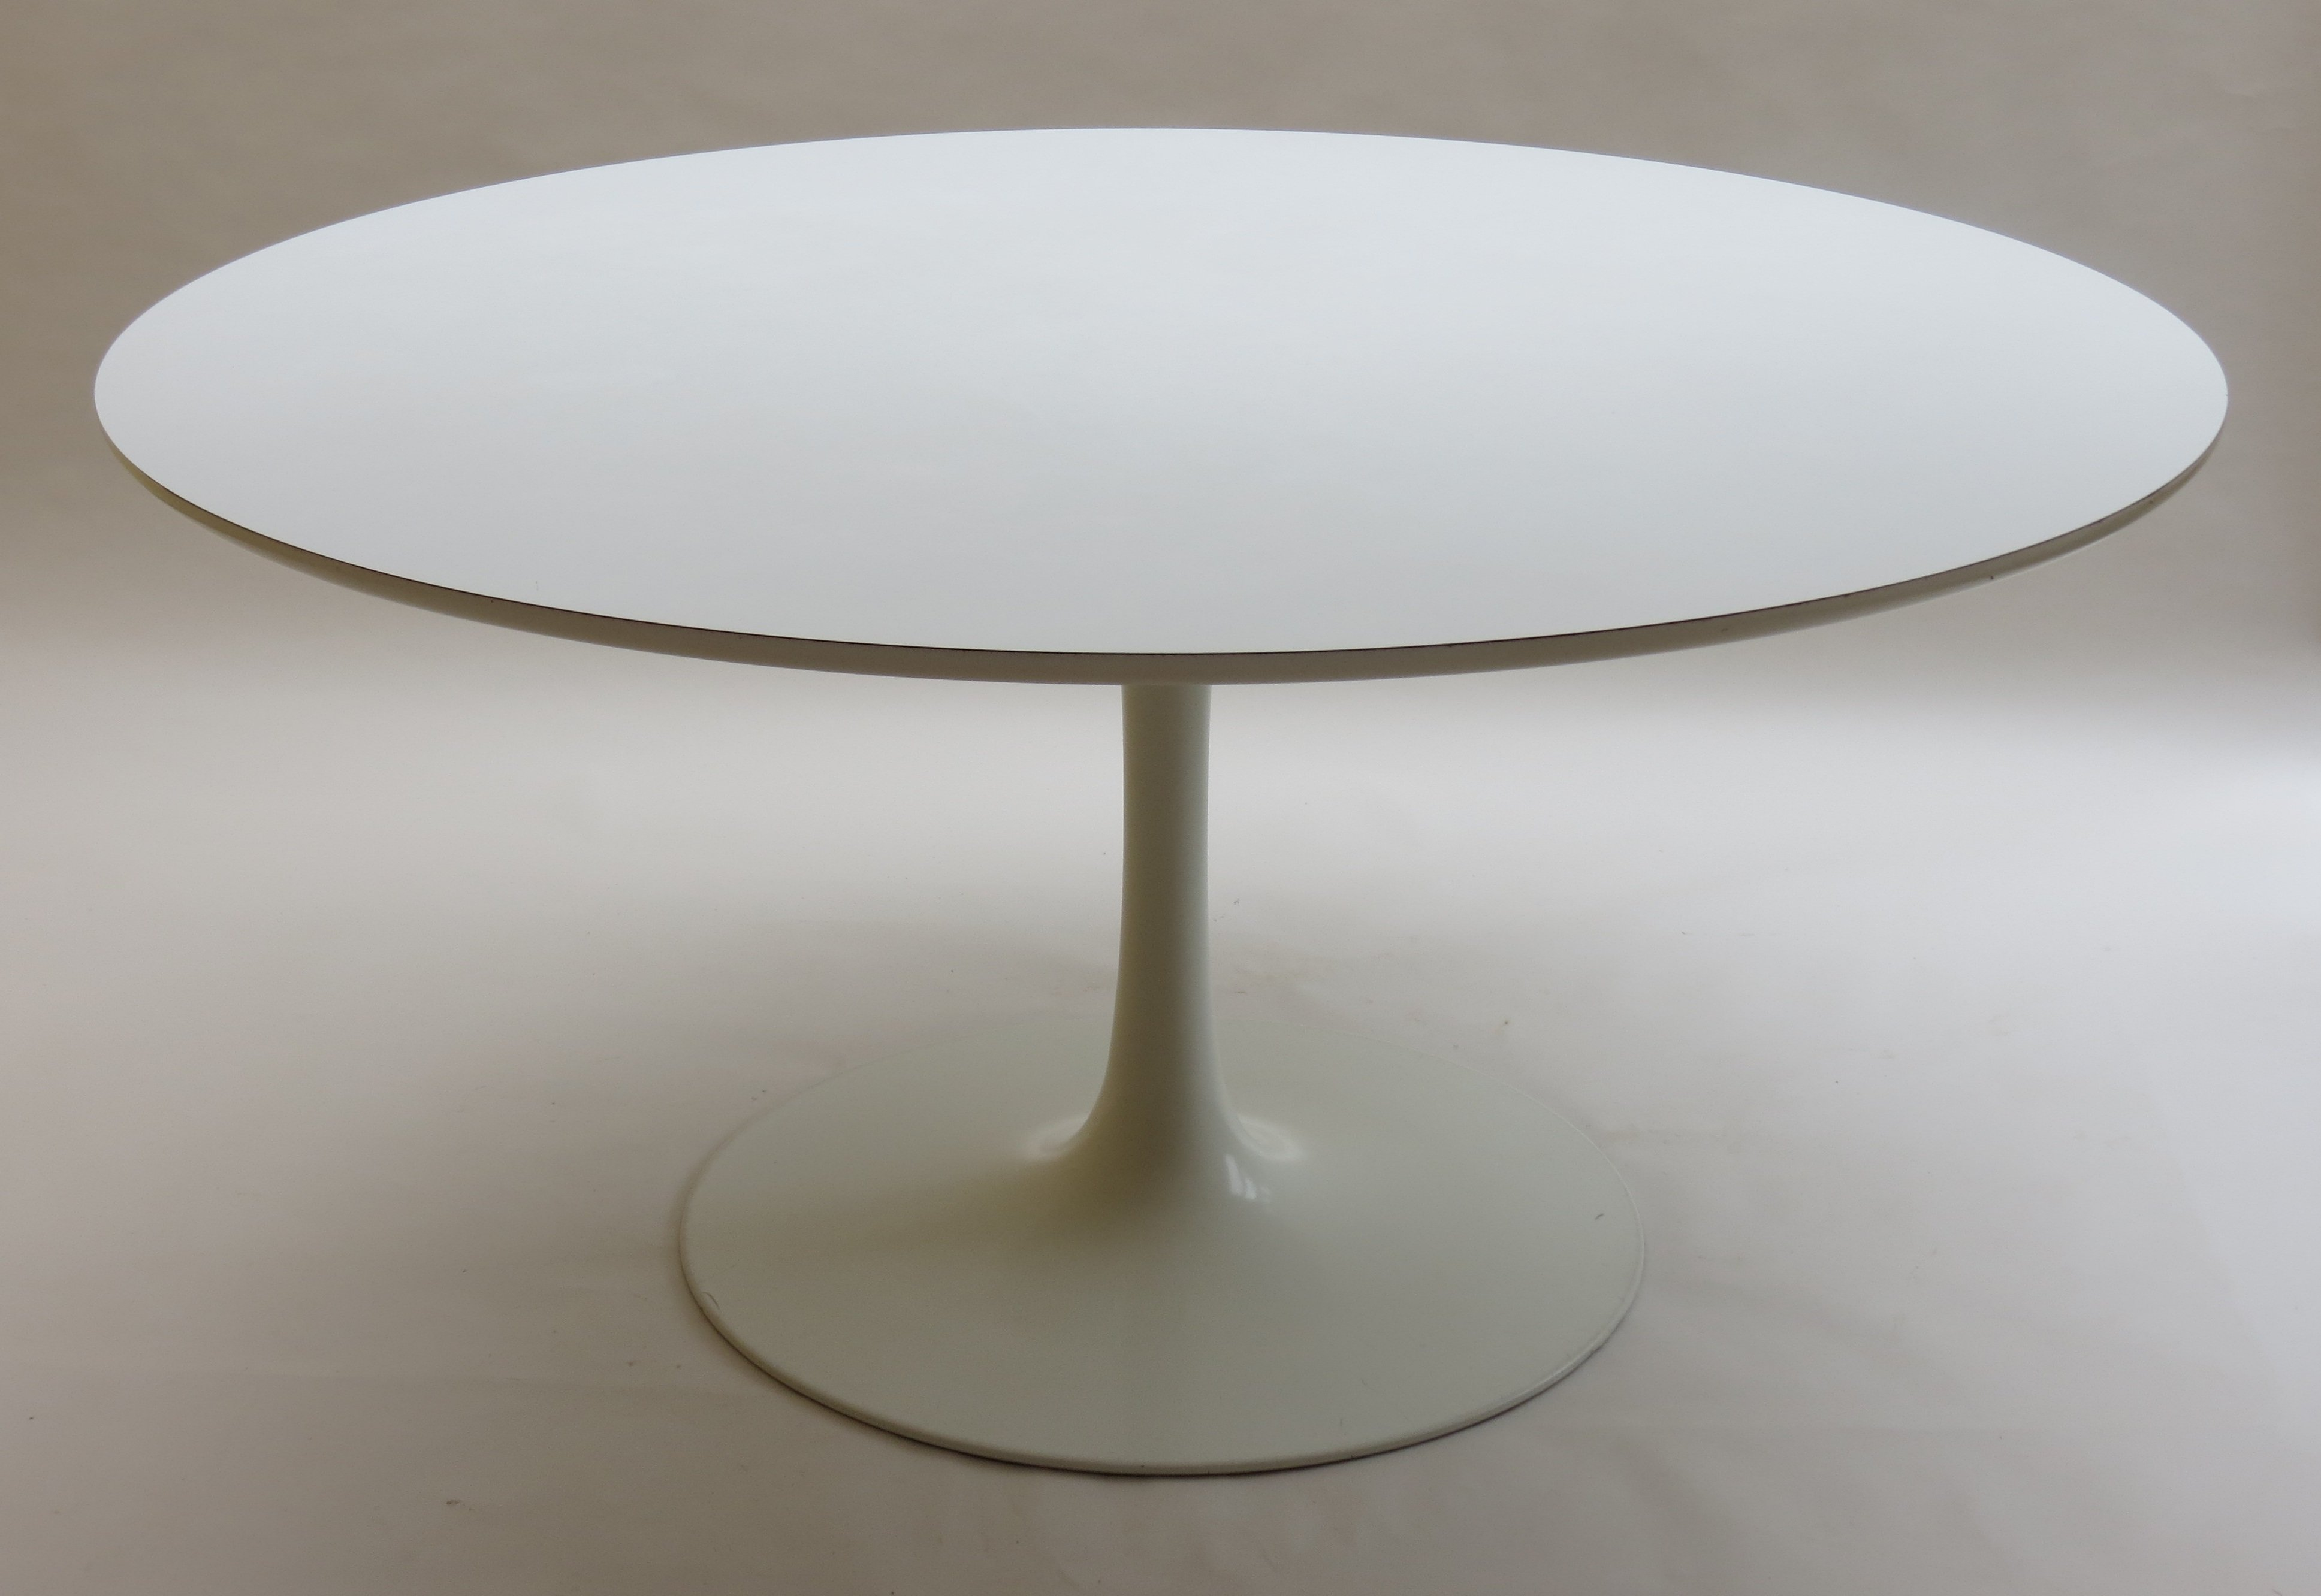 Genial Tulip Dining Table By Maurice Burke For Arkana Of Bath, 1960s